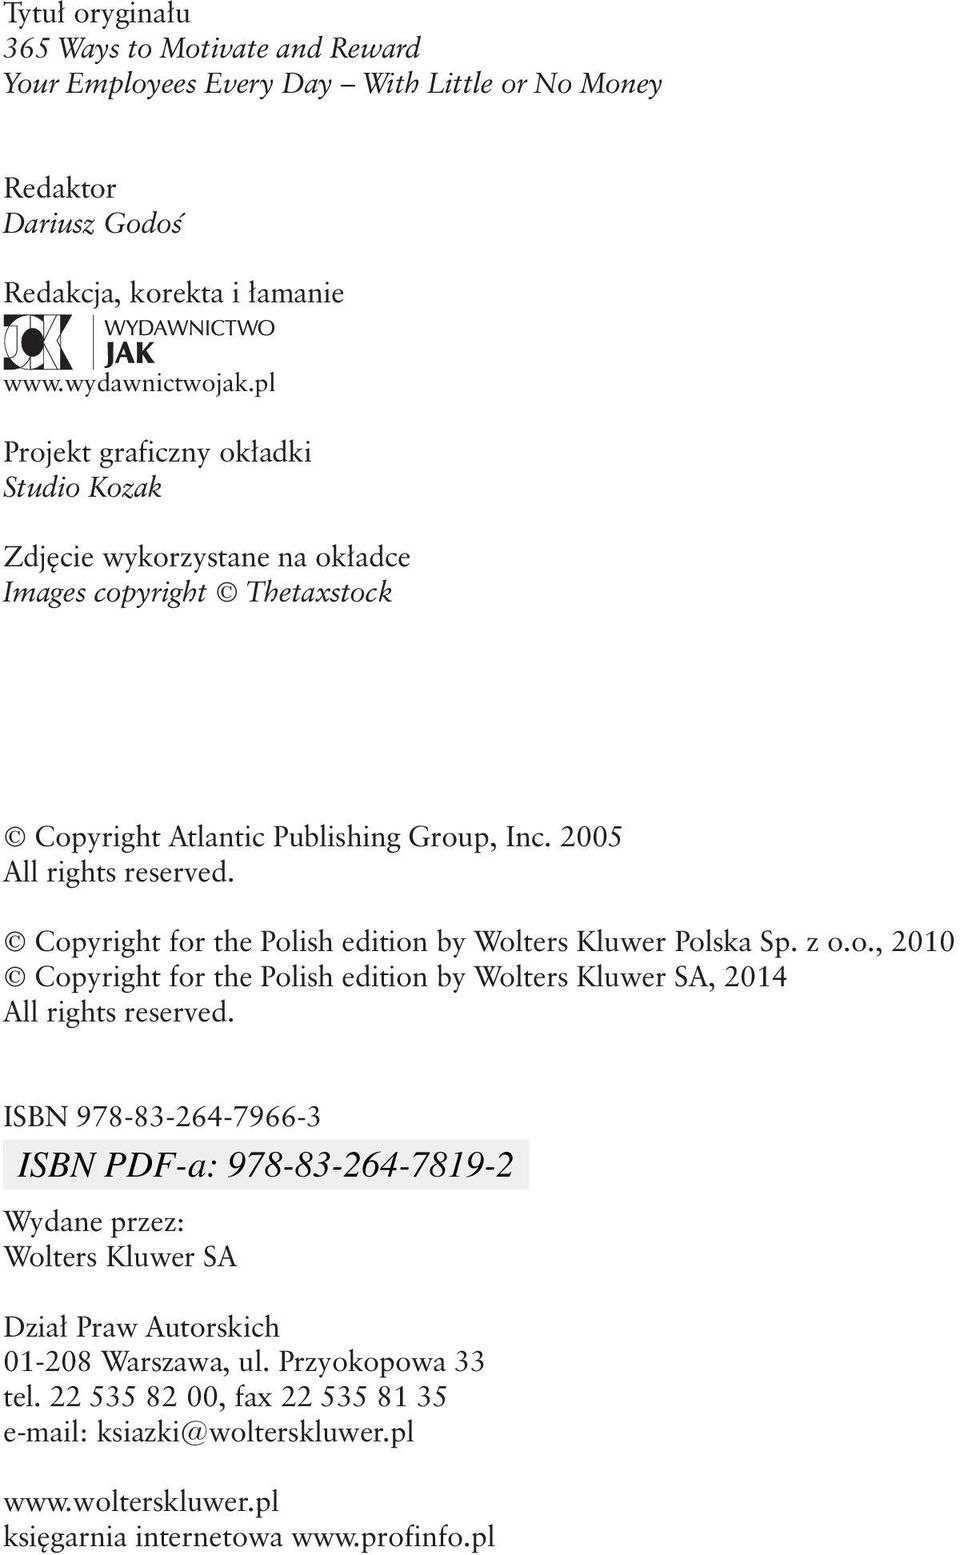 Copyright for the Polish edition by Wolters Kluwer Polska Sp. z o.o., 2010 Copyright for the Polish edition by Wolters Kluwer SA, 2014 All rights reserved.